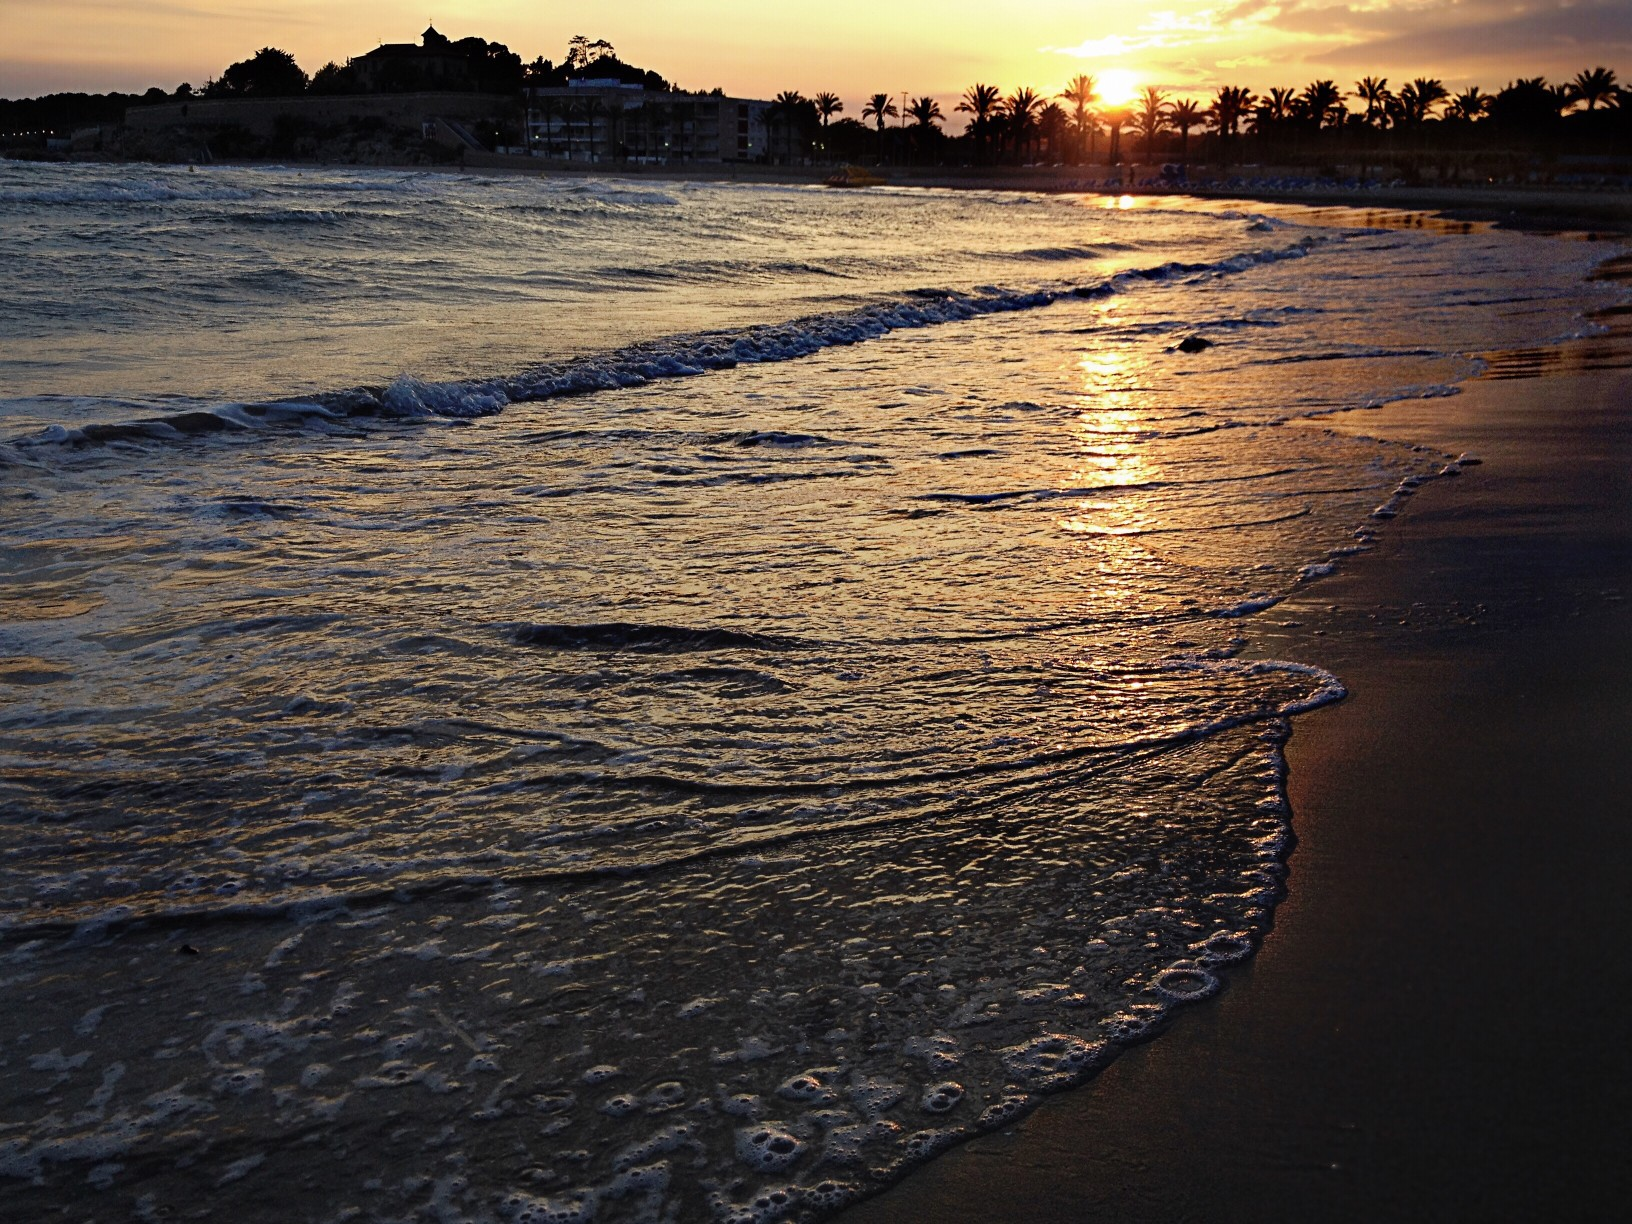 puesta-de-sol-en-la-playa-sunset-in-the-beach_t20_PQ1aON